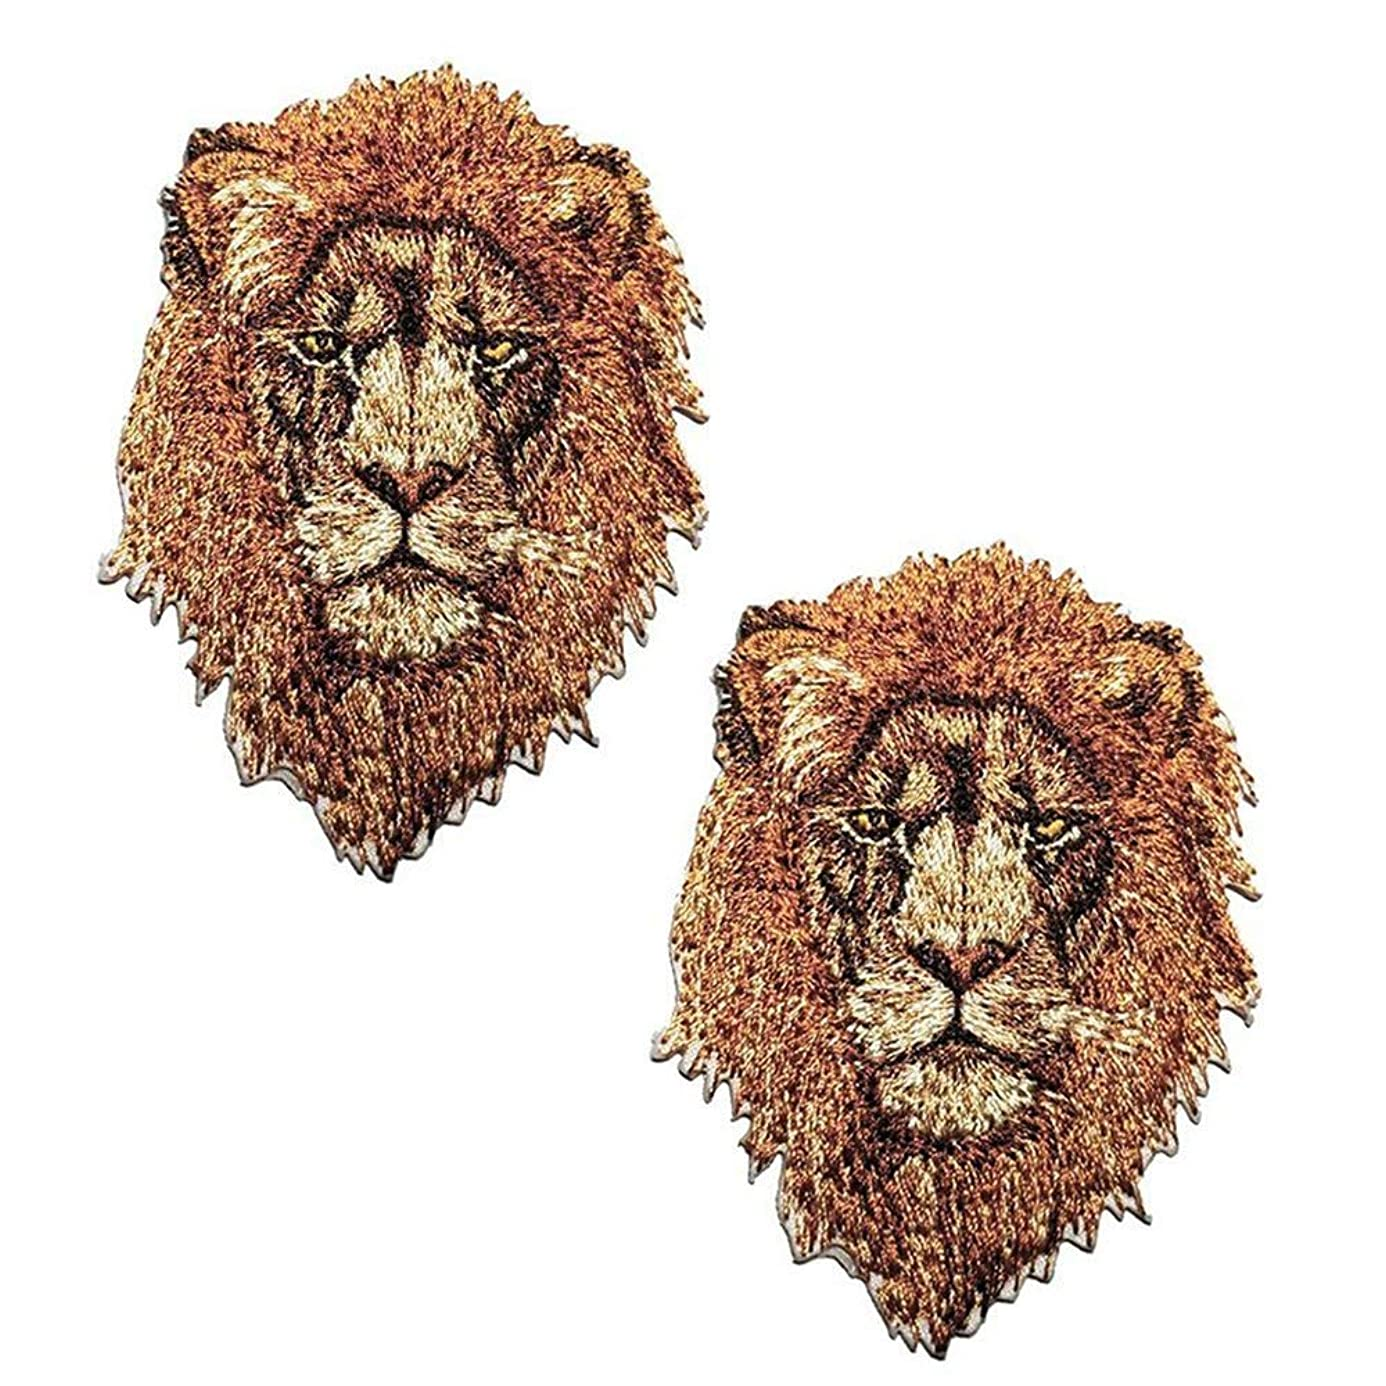 2 Pack Delicate Embroidered Patches, Iron On Patches, Cool Embroidery Patches, Sew On Applique Tiger Patch, Custom Backpack Patches for Men, Boys, Kids, Super Cool! (#2 Lion (2 Pack)) vwj4981022